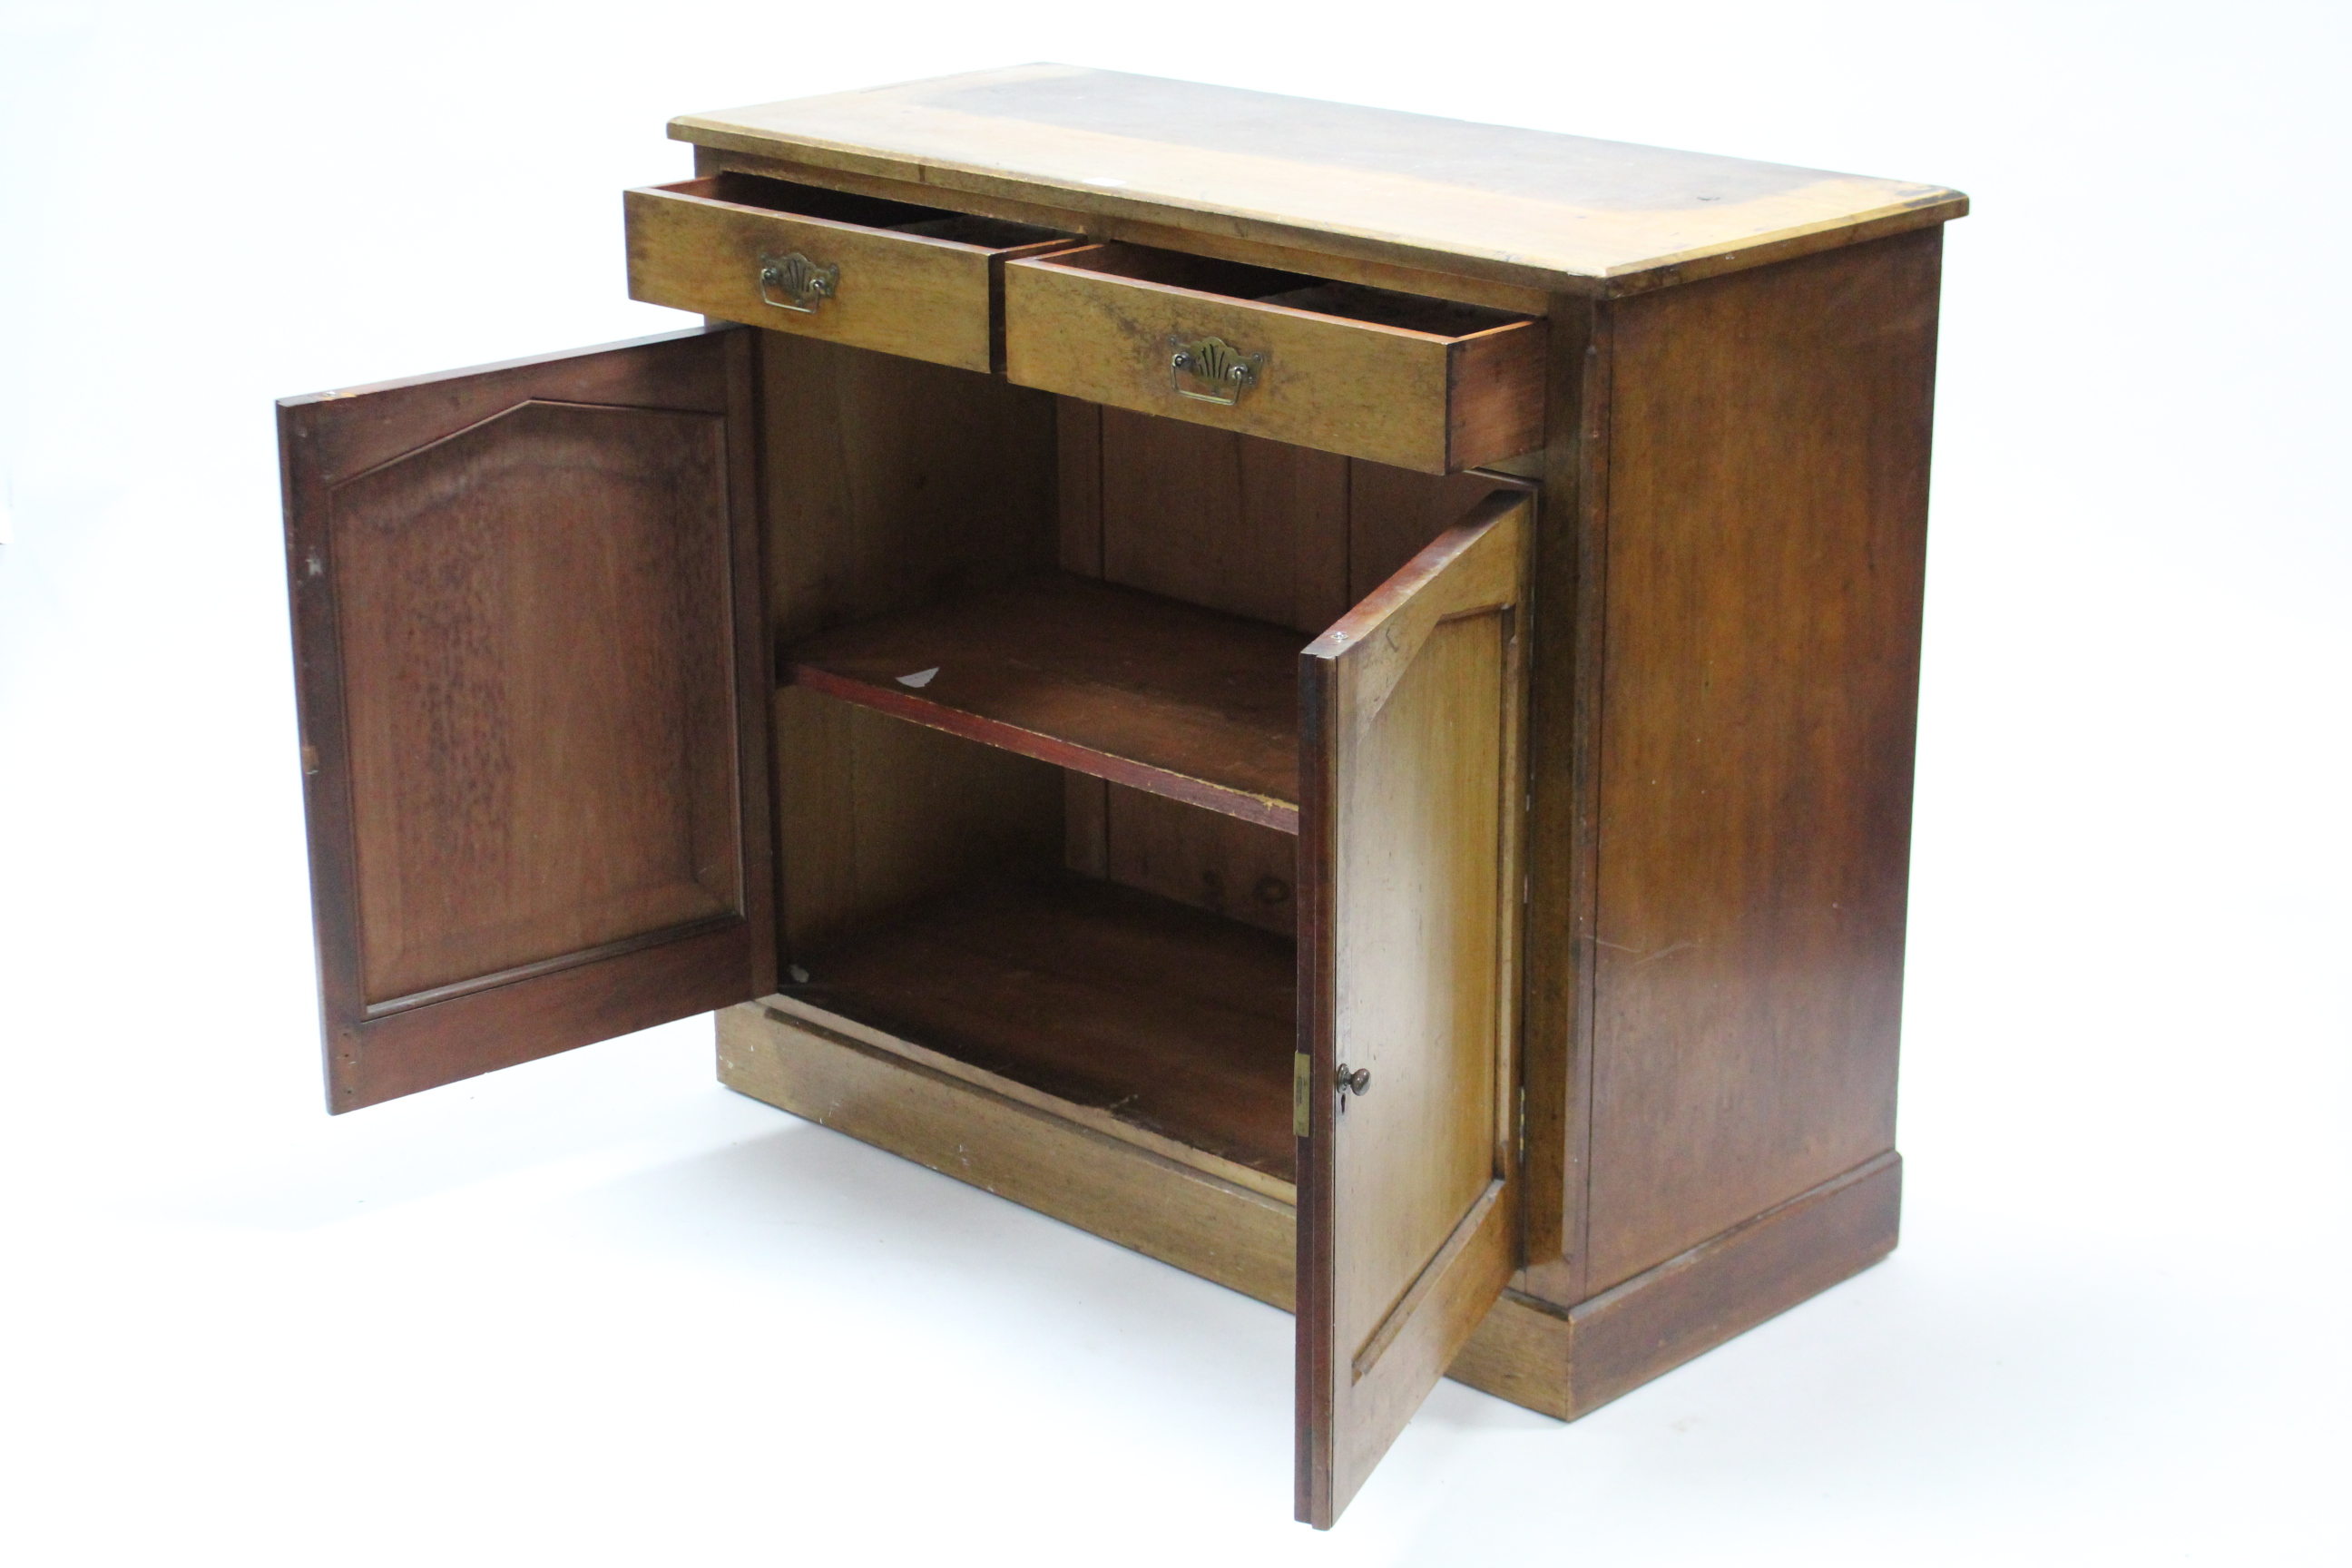 Lot 52 - A late 19th century mahogany cabinet, fitted two frieze drawers above cupboard enclosed by pair of